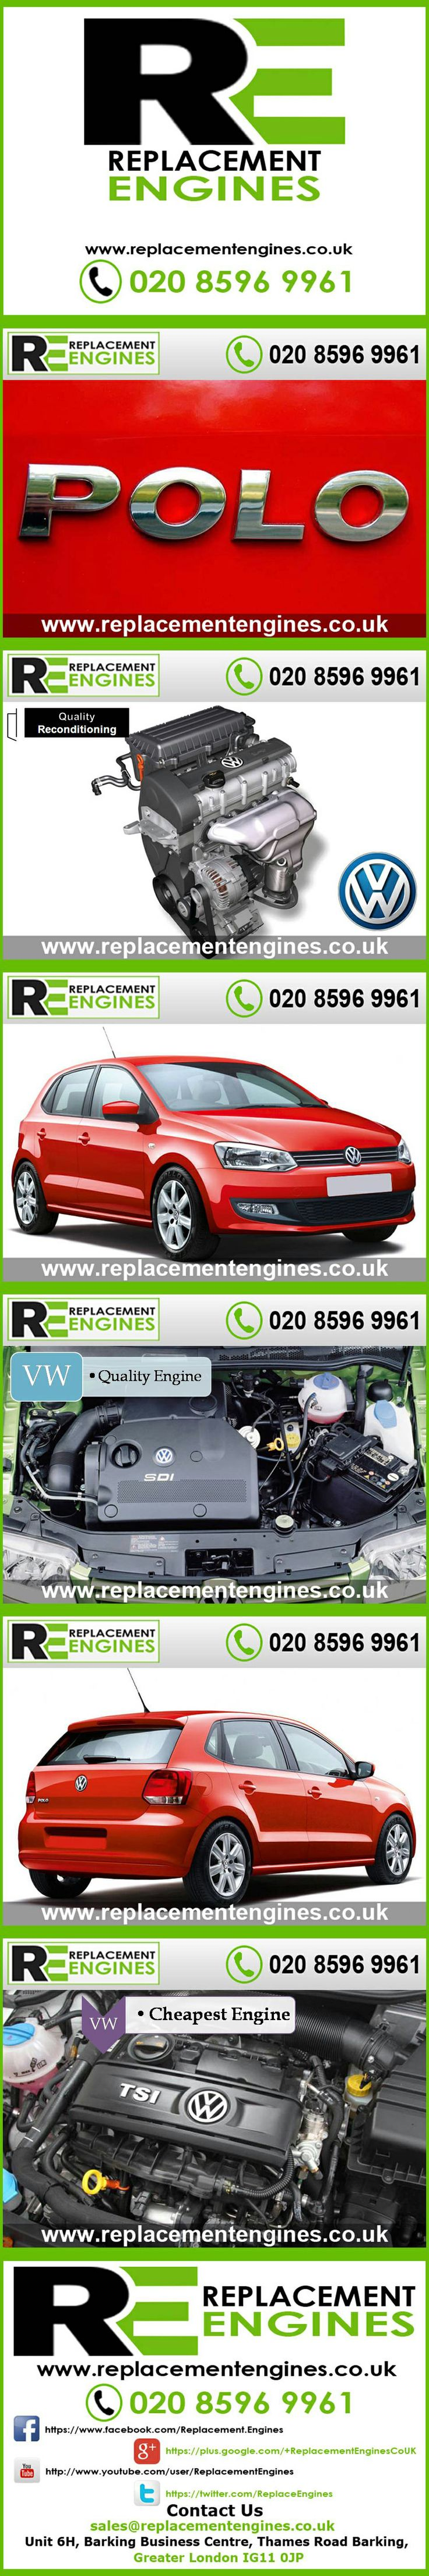 VW Polo Engines for sale at the cheapest prices, we have low mileage used & reconditioned engines in stock now, ready to be delivered to anywhere in the UK or overseas, visit Replacement Engines website here.  http://www.replacementengines.co.uk/car-md.asp?part=all-vw-polo-engine&mo_id=31141